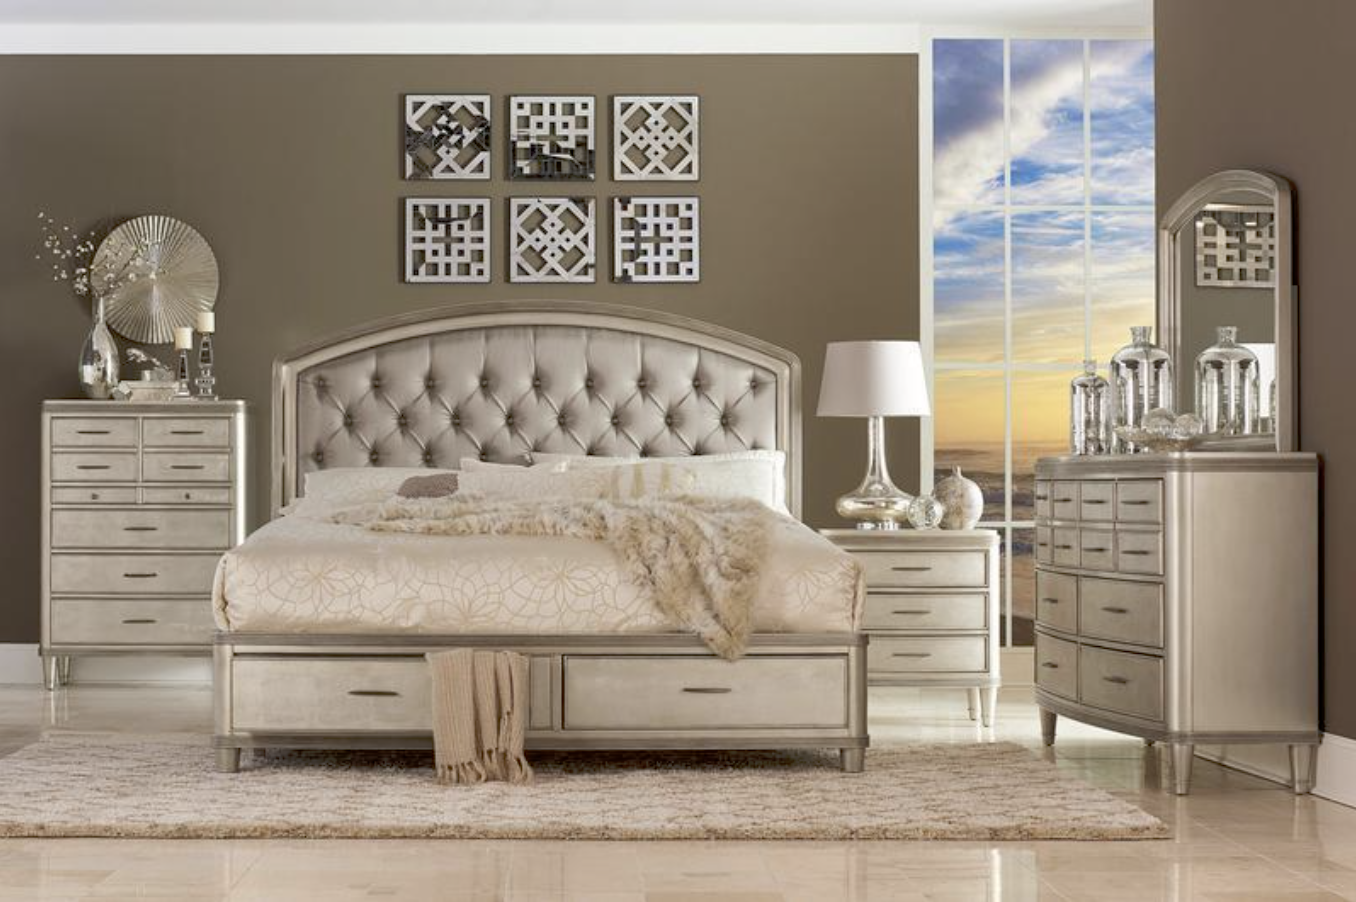 The Tandie Bedroom Collection By Homelegance Furniture Is Such A Perfect Set For Any Feminine Classy Bedroom If Platform Bedroom Sets Bedroom Sets Furniture